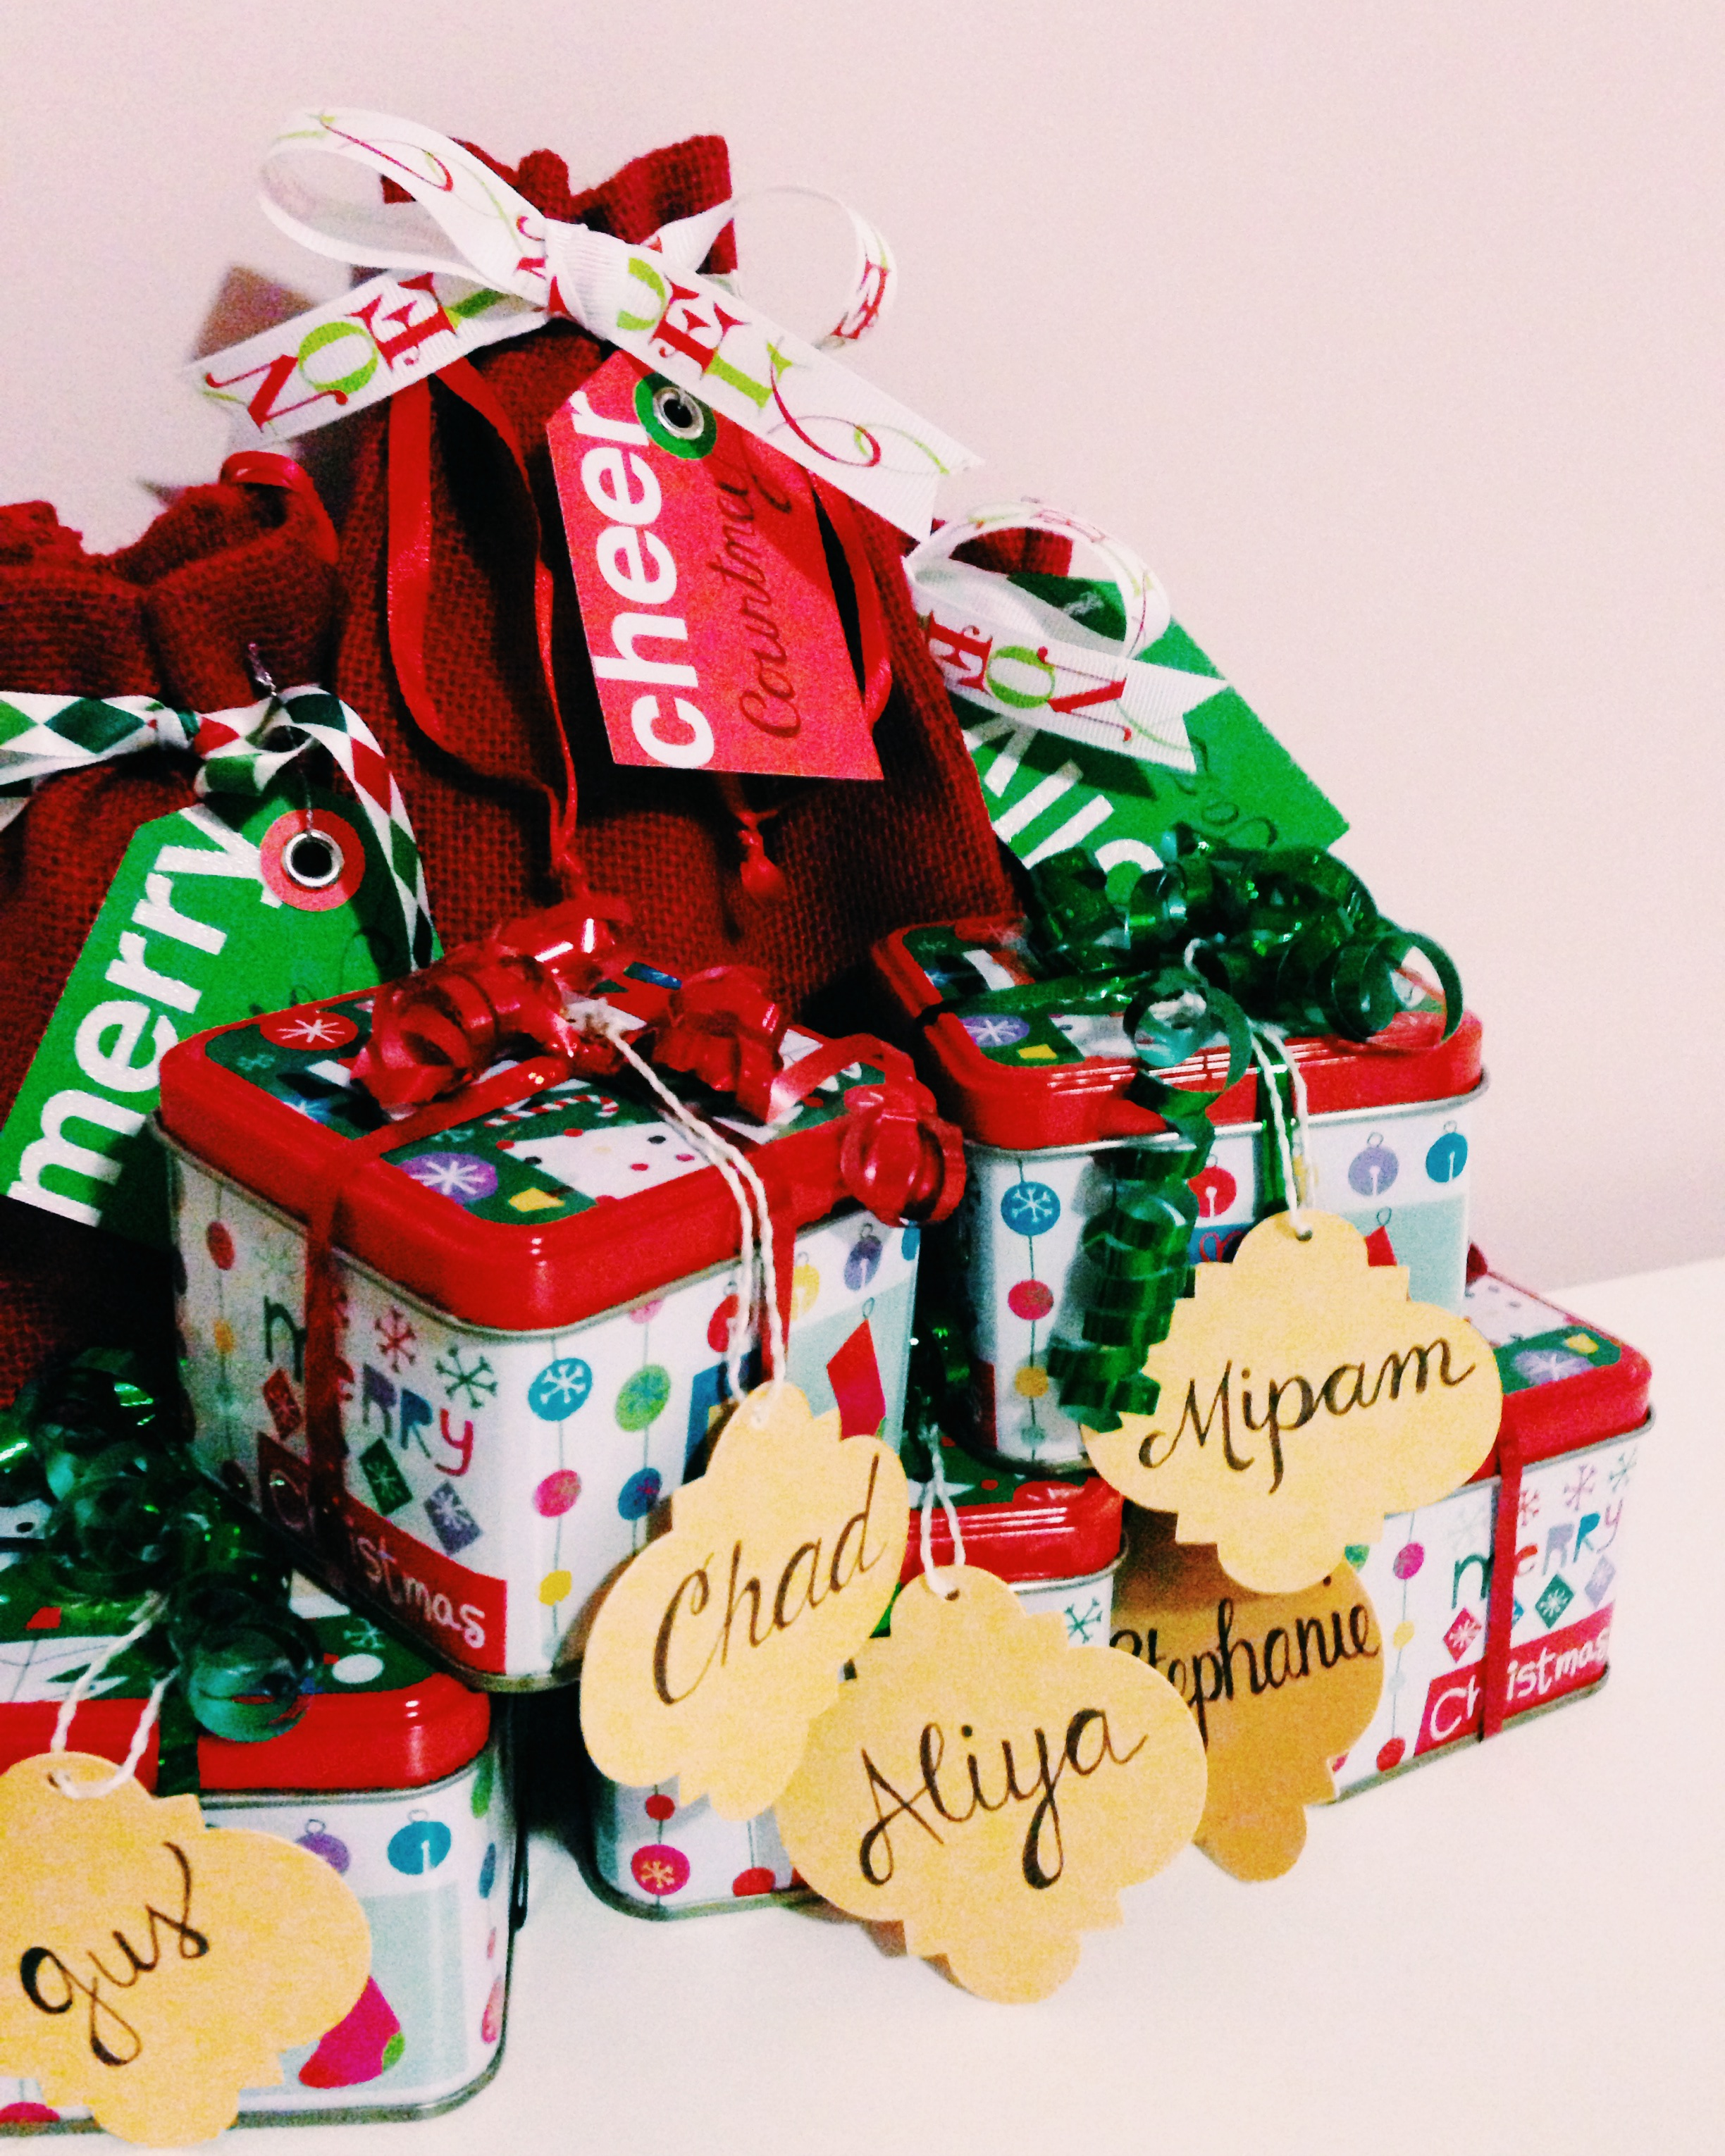 Giftwrapping 2013